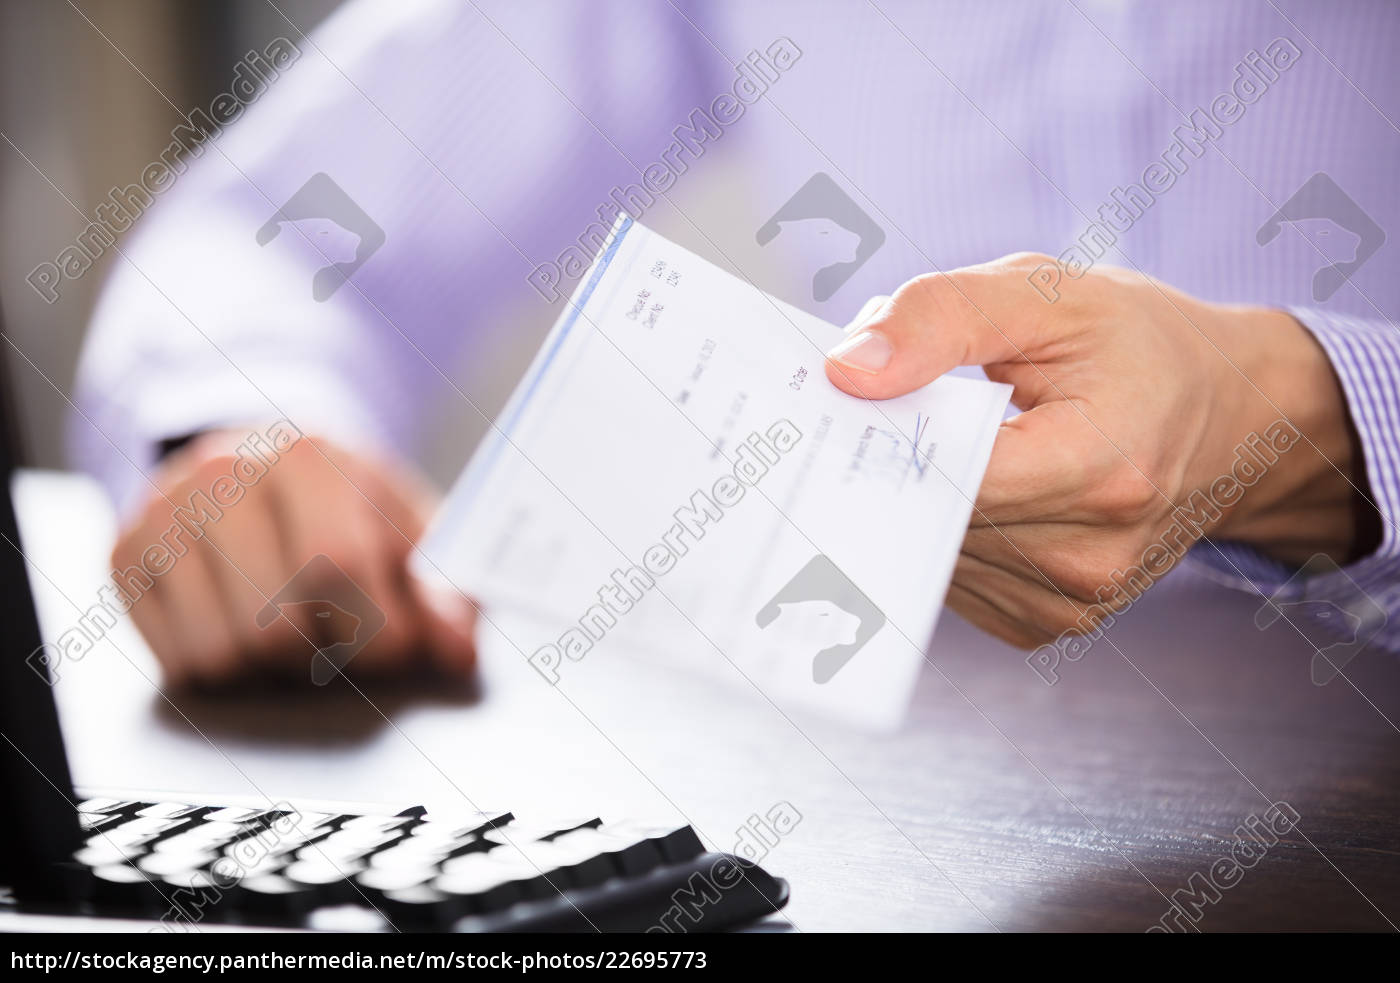 businessperson's, hand, holding, cheque - 22695773